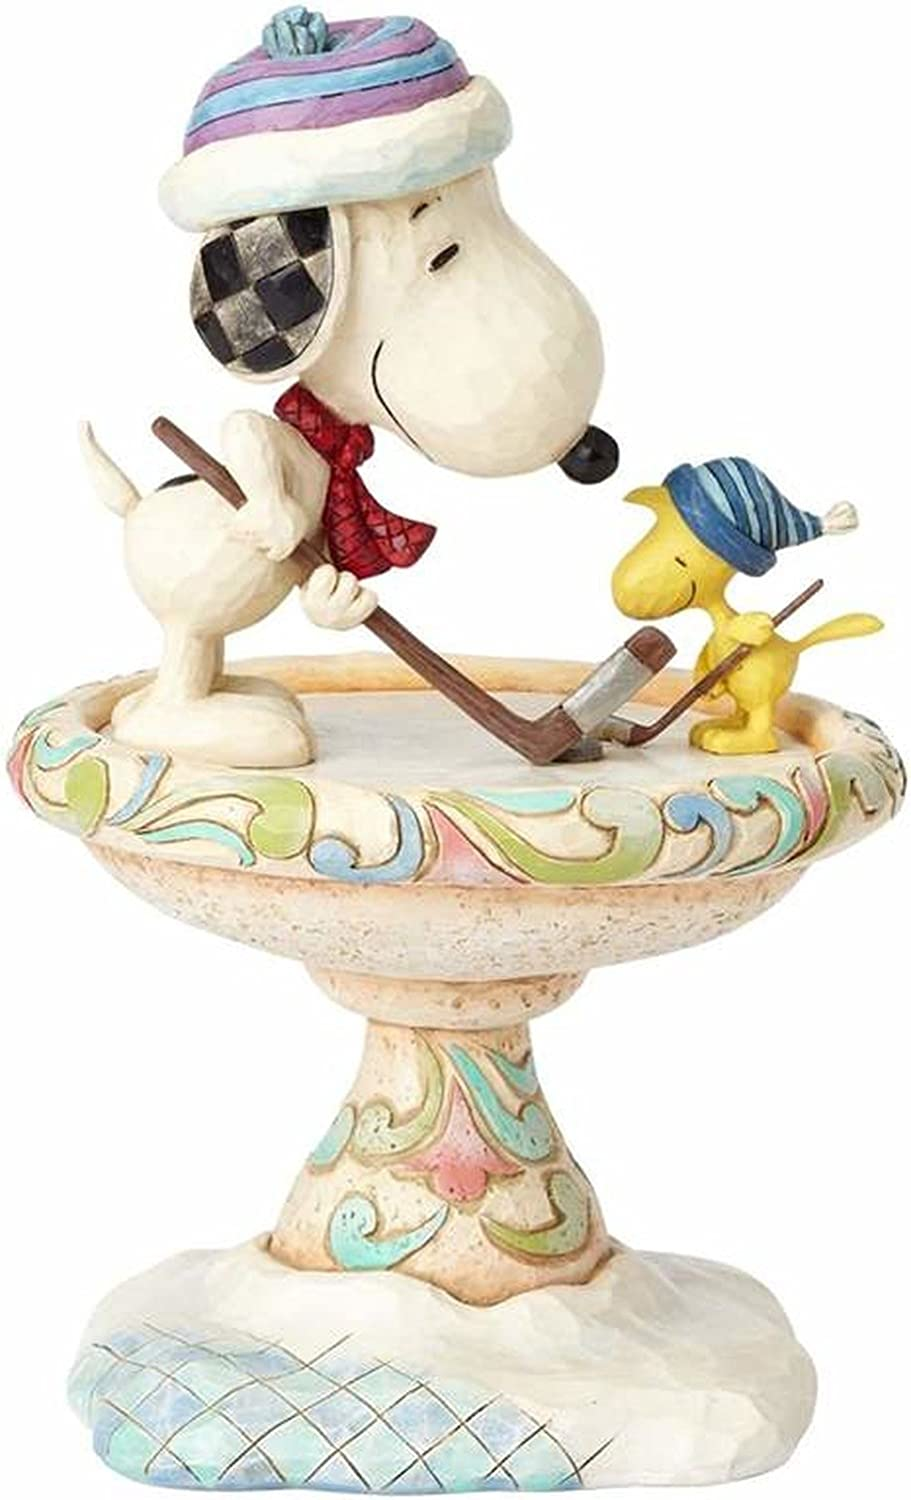 "Enesco Peanuts by Jim Shore Snoopy and Woodstock, 8"" Stone Resin Figurine, 8 , Multicolor"